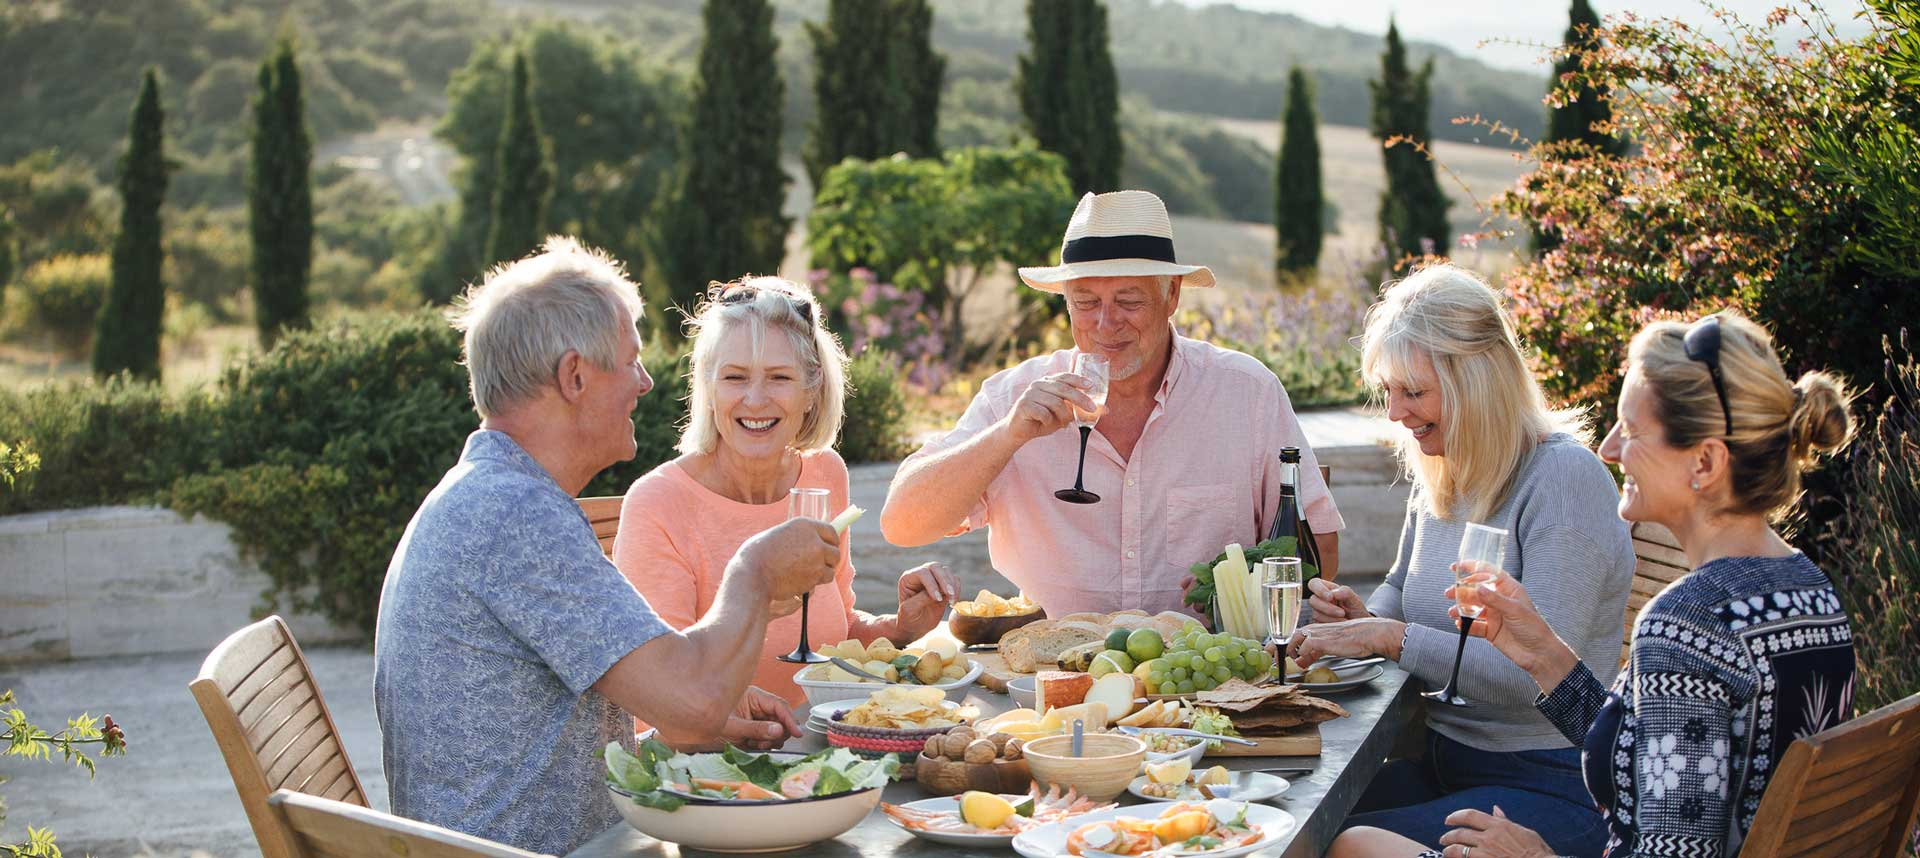 A family having lunch outdoors at a winery